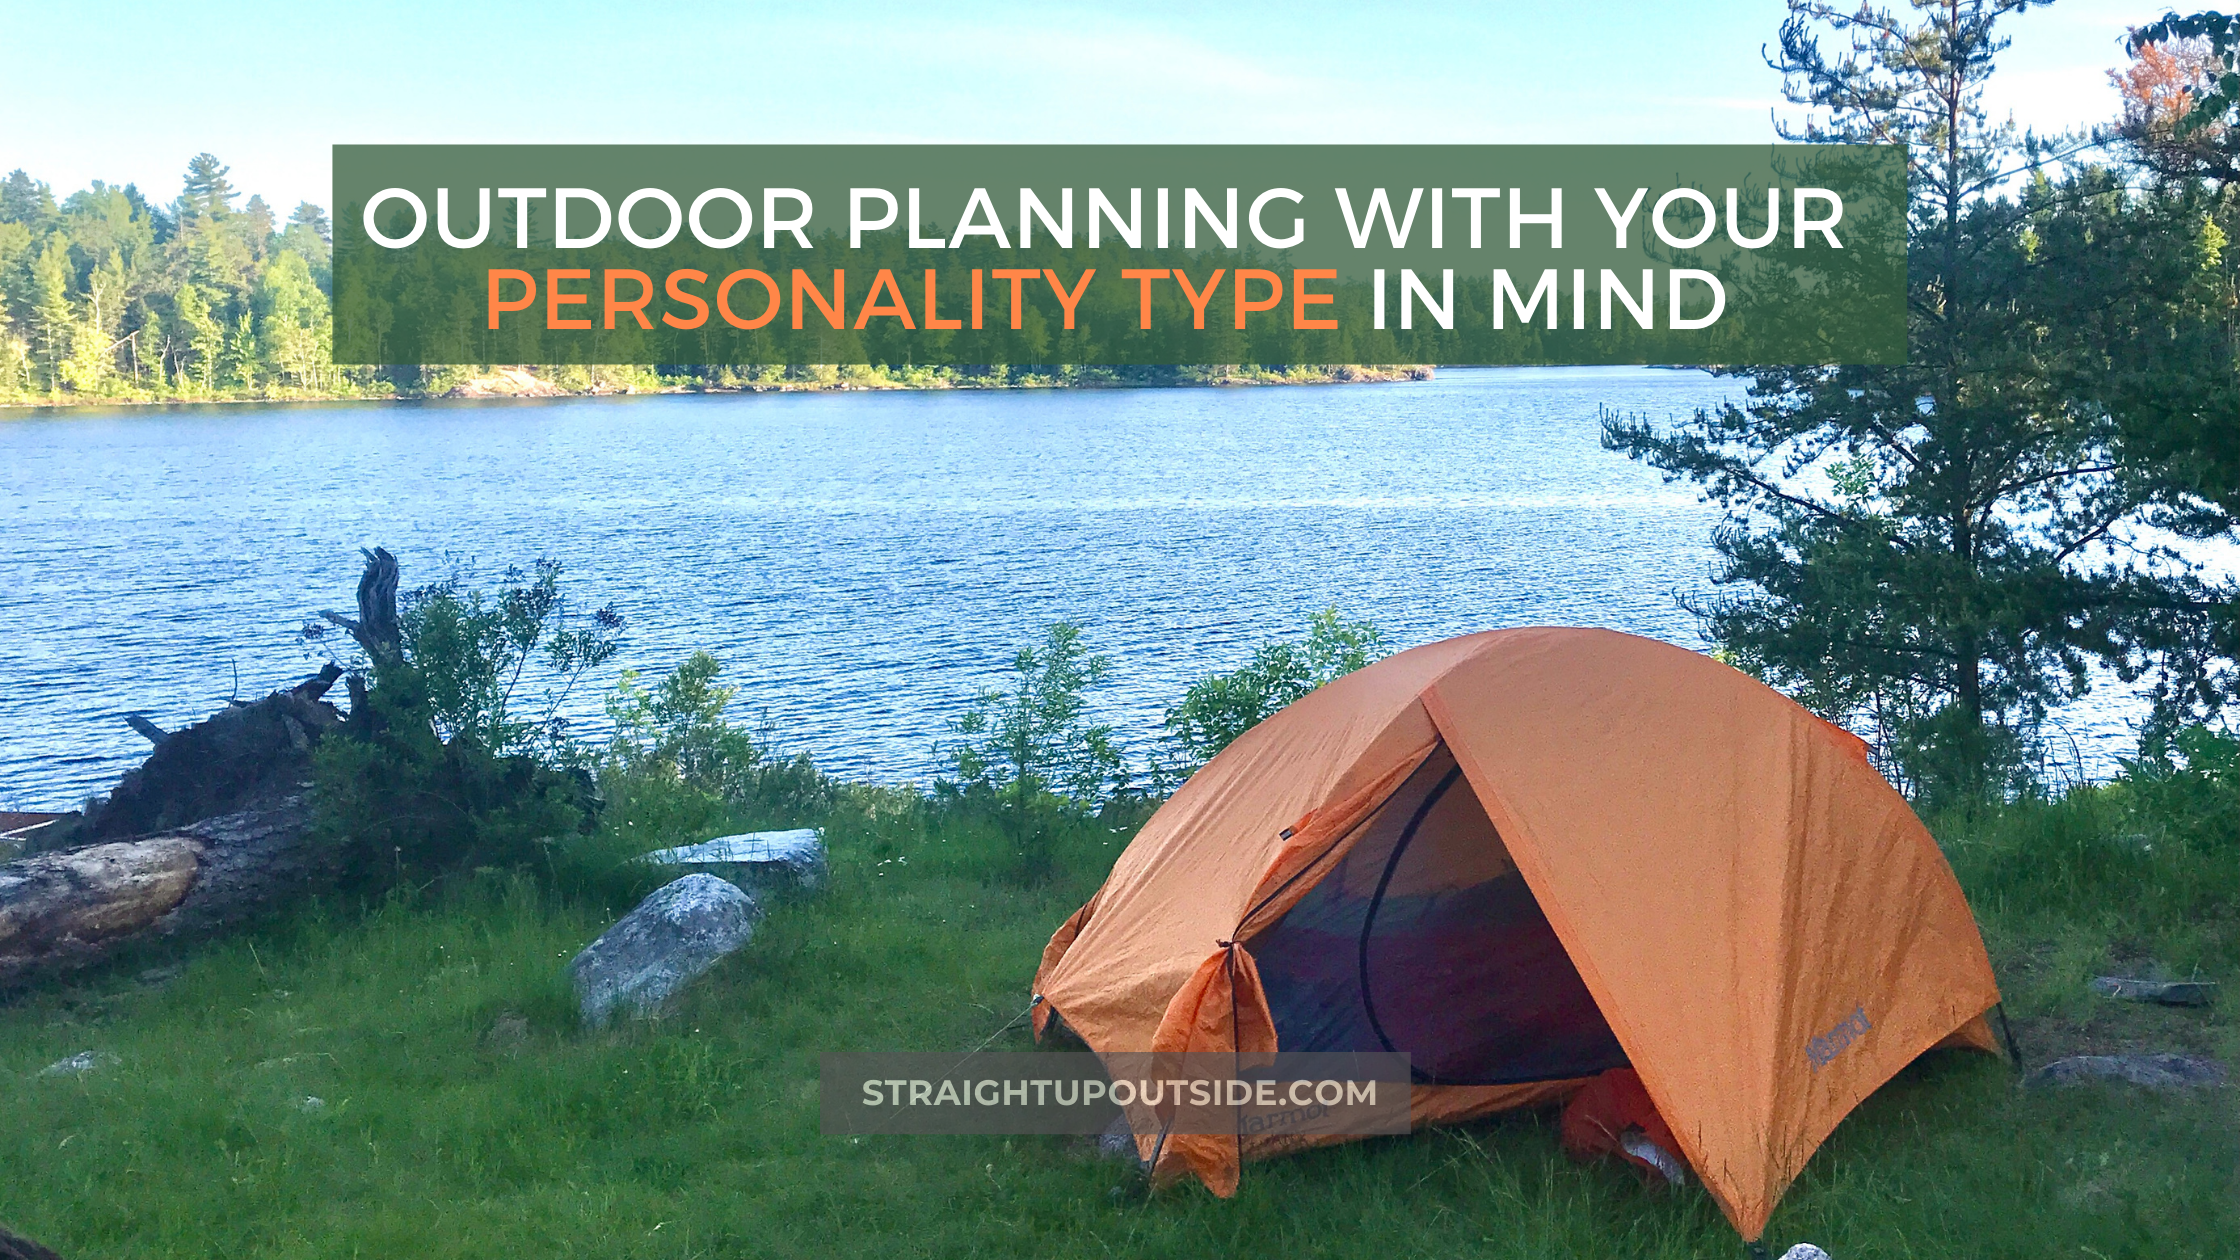 Outdoor Planning with Your Personality Type in Mind